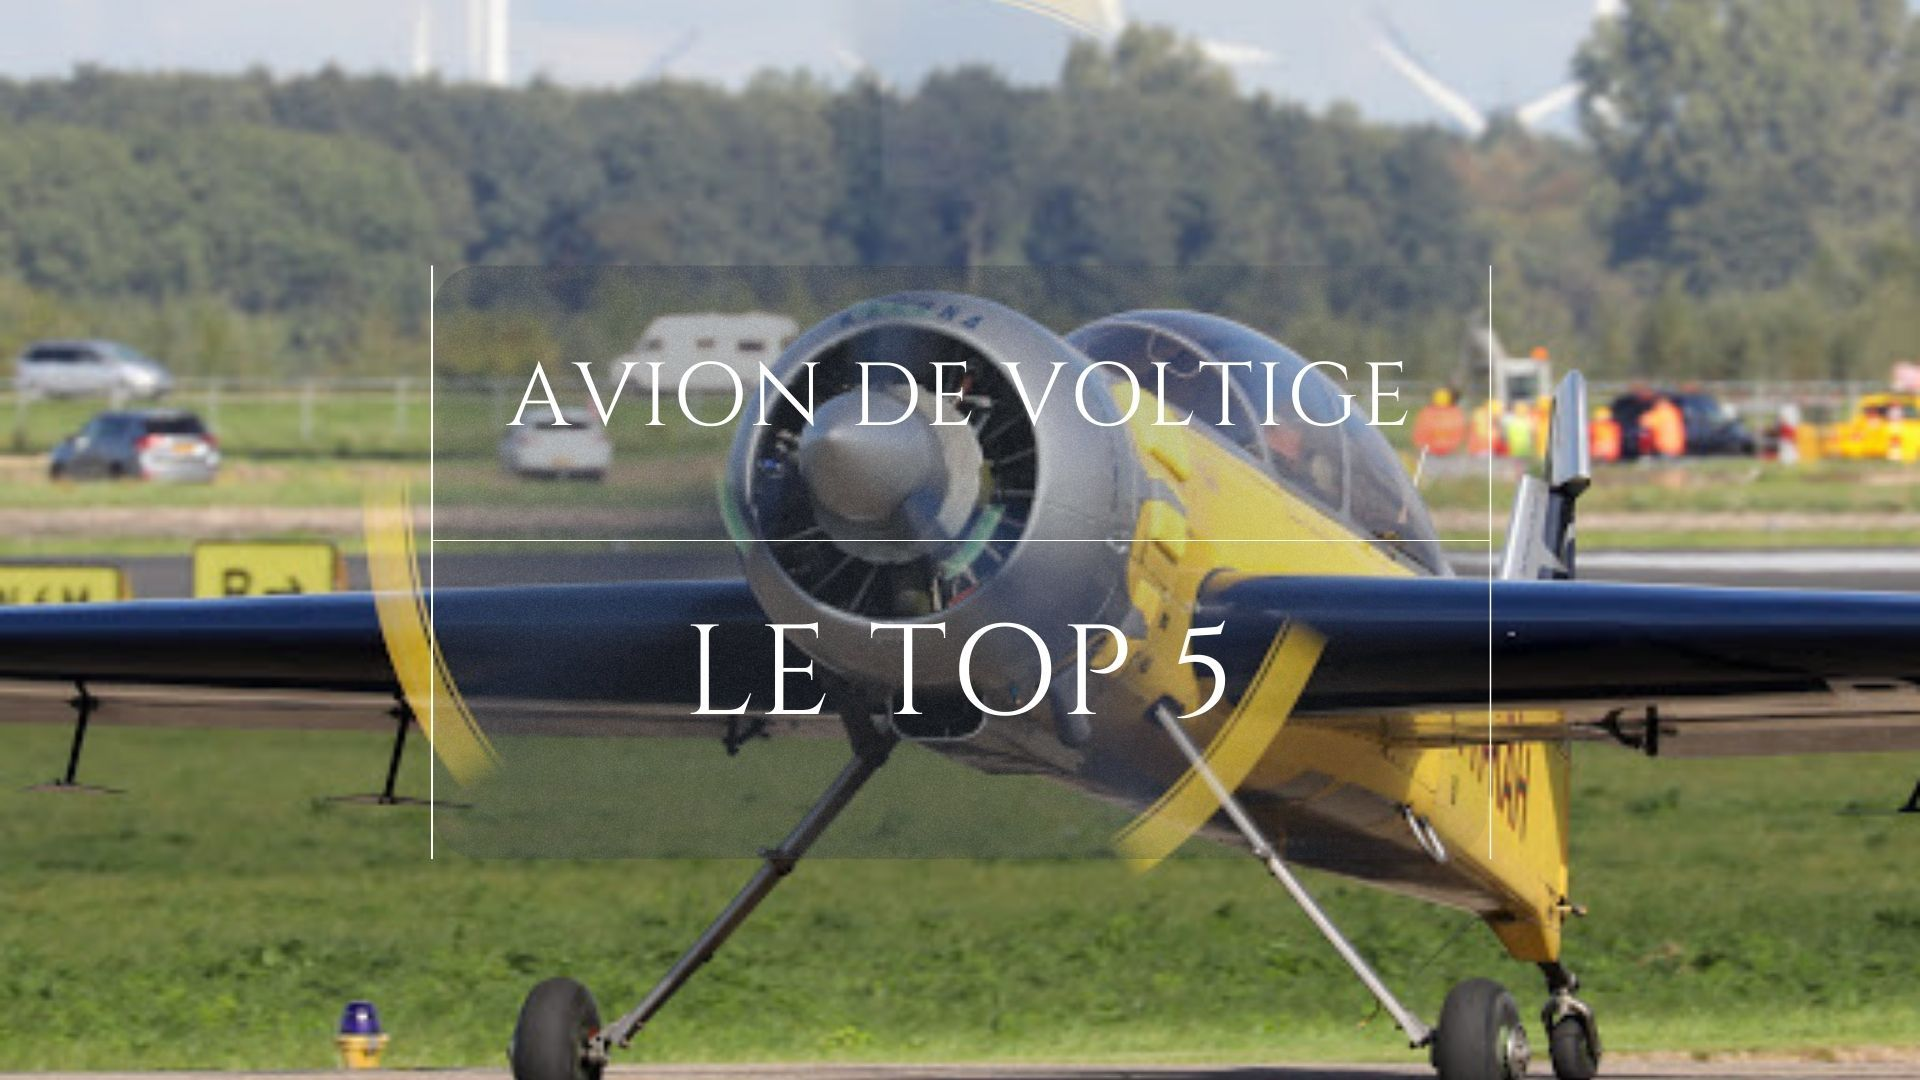 Top 5 Avion de voltige